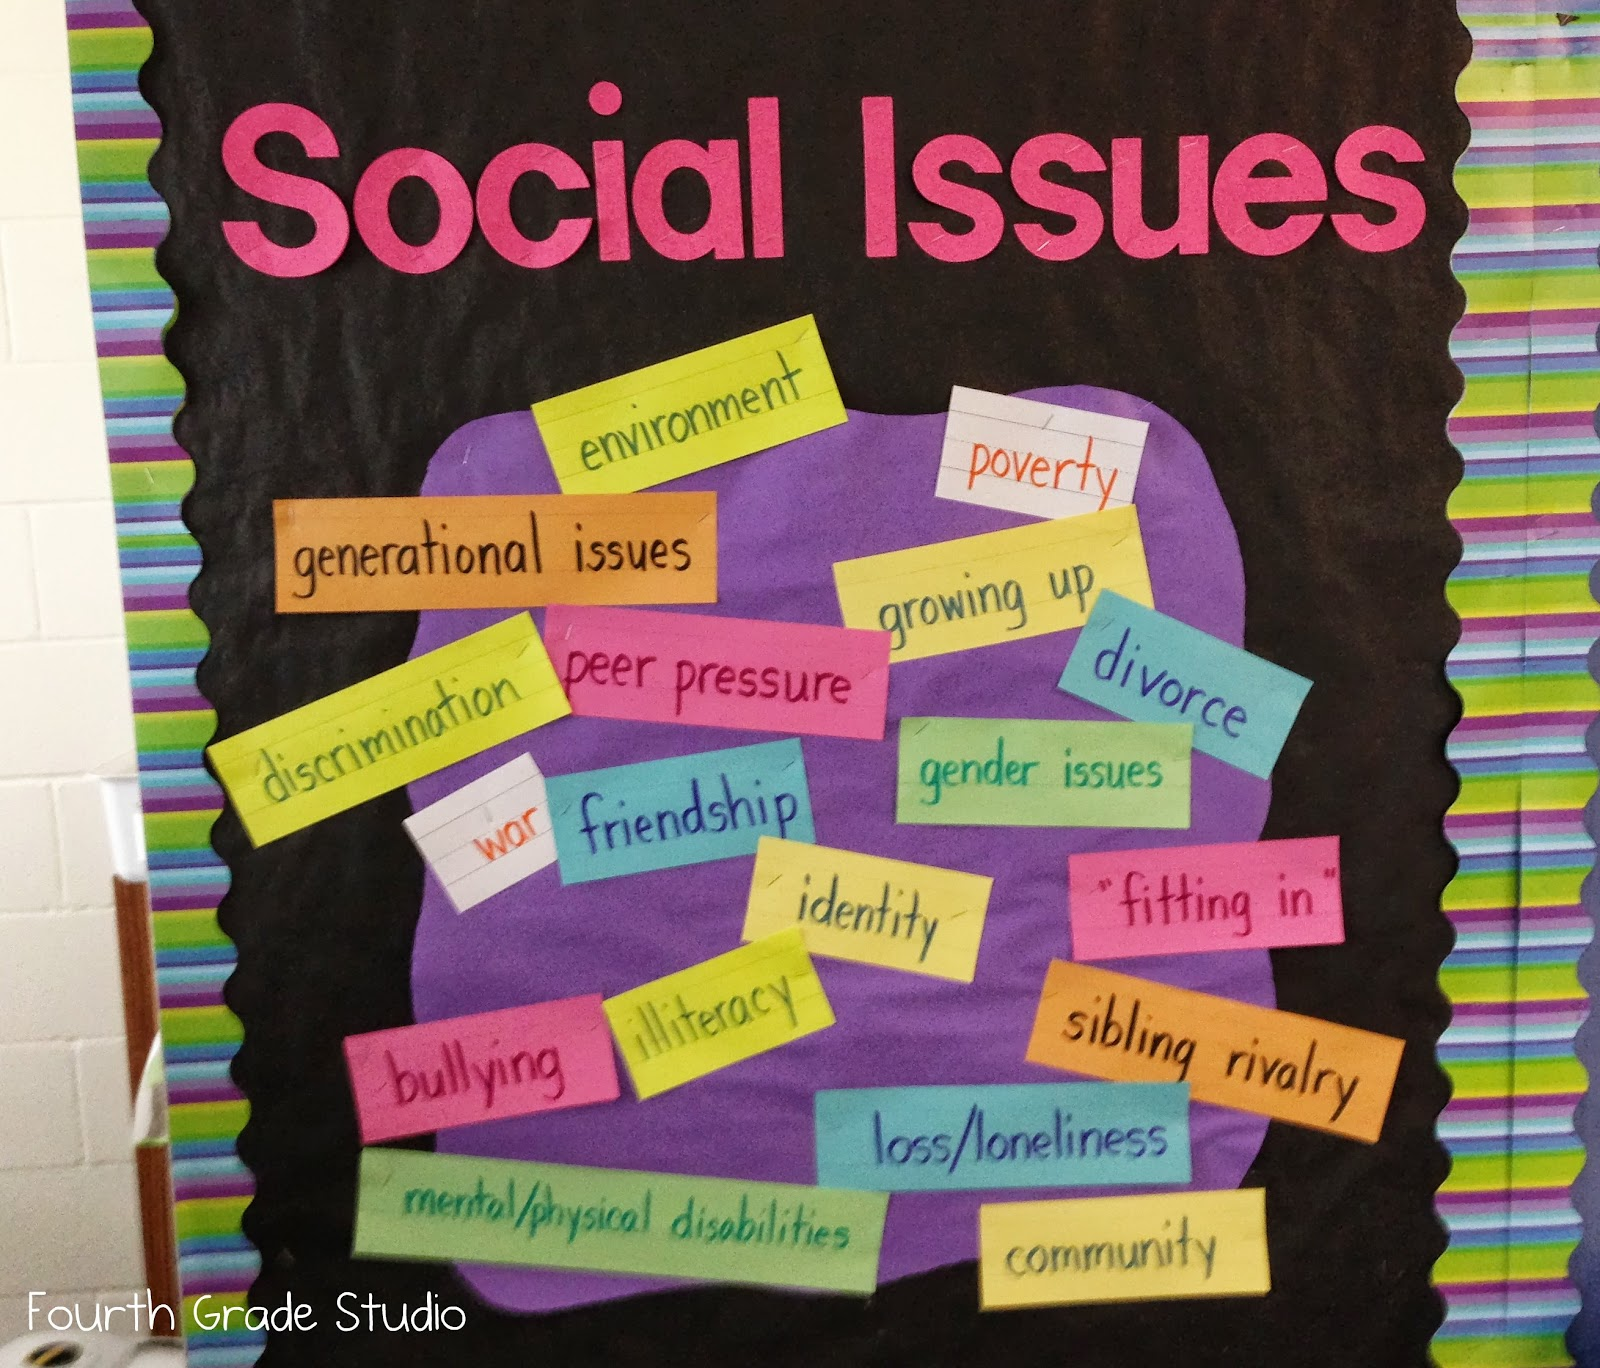 social issues in schools However, an impediment in the path of child development at schools, comes by way of the various social issues that plague our education system let us take a look at what these issues are in the following section.